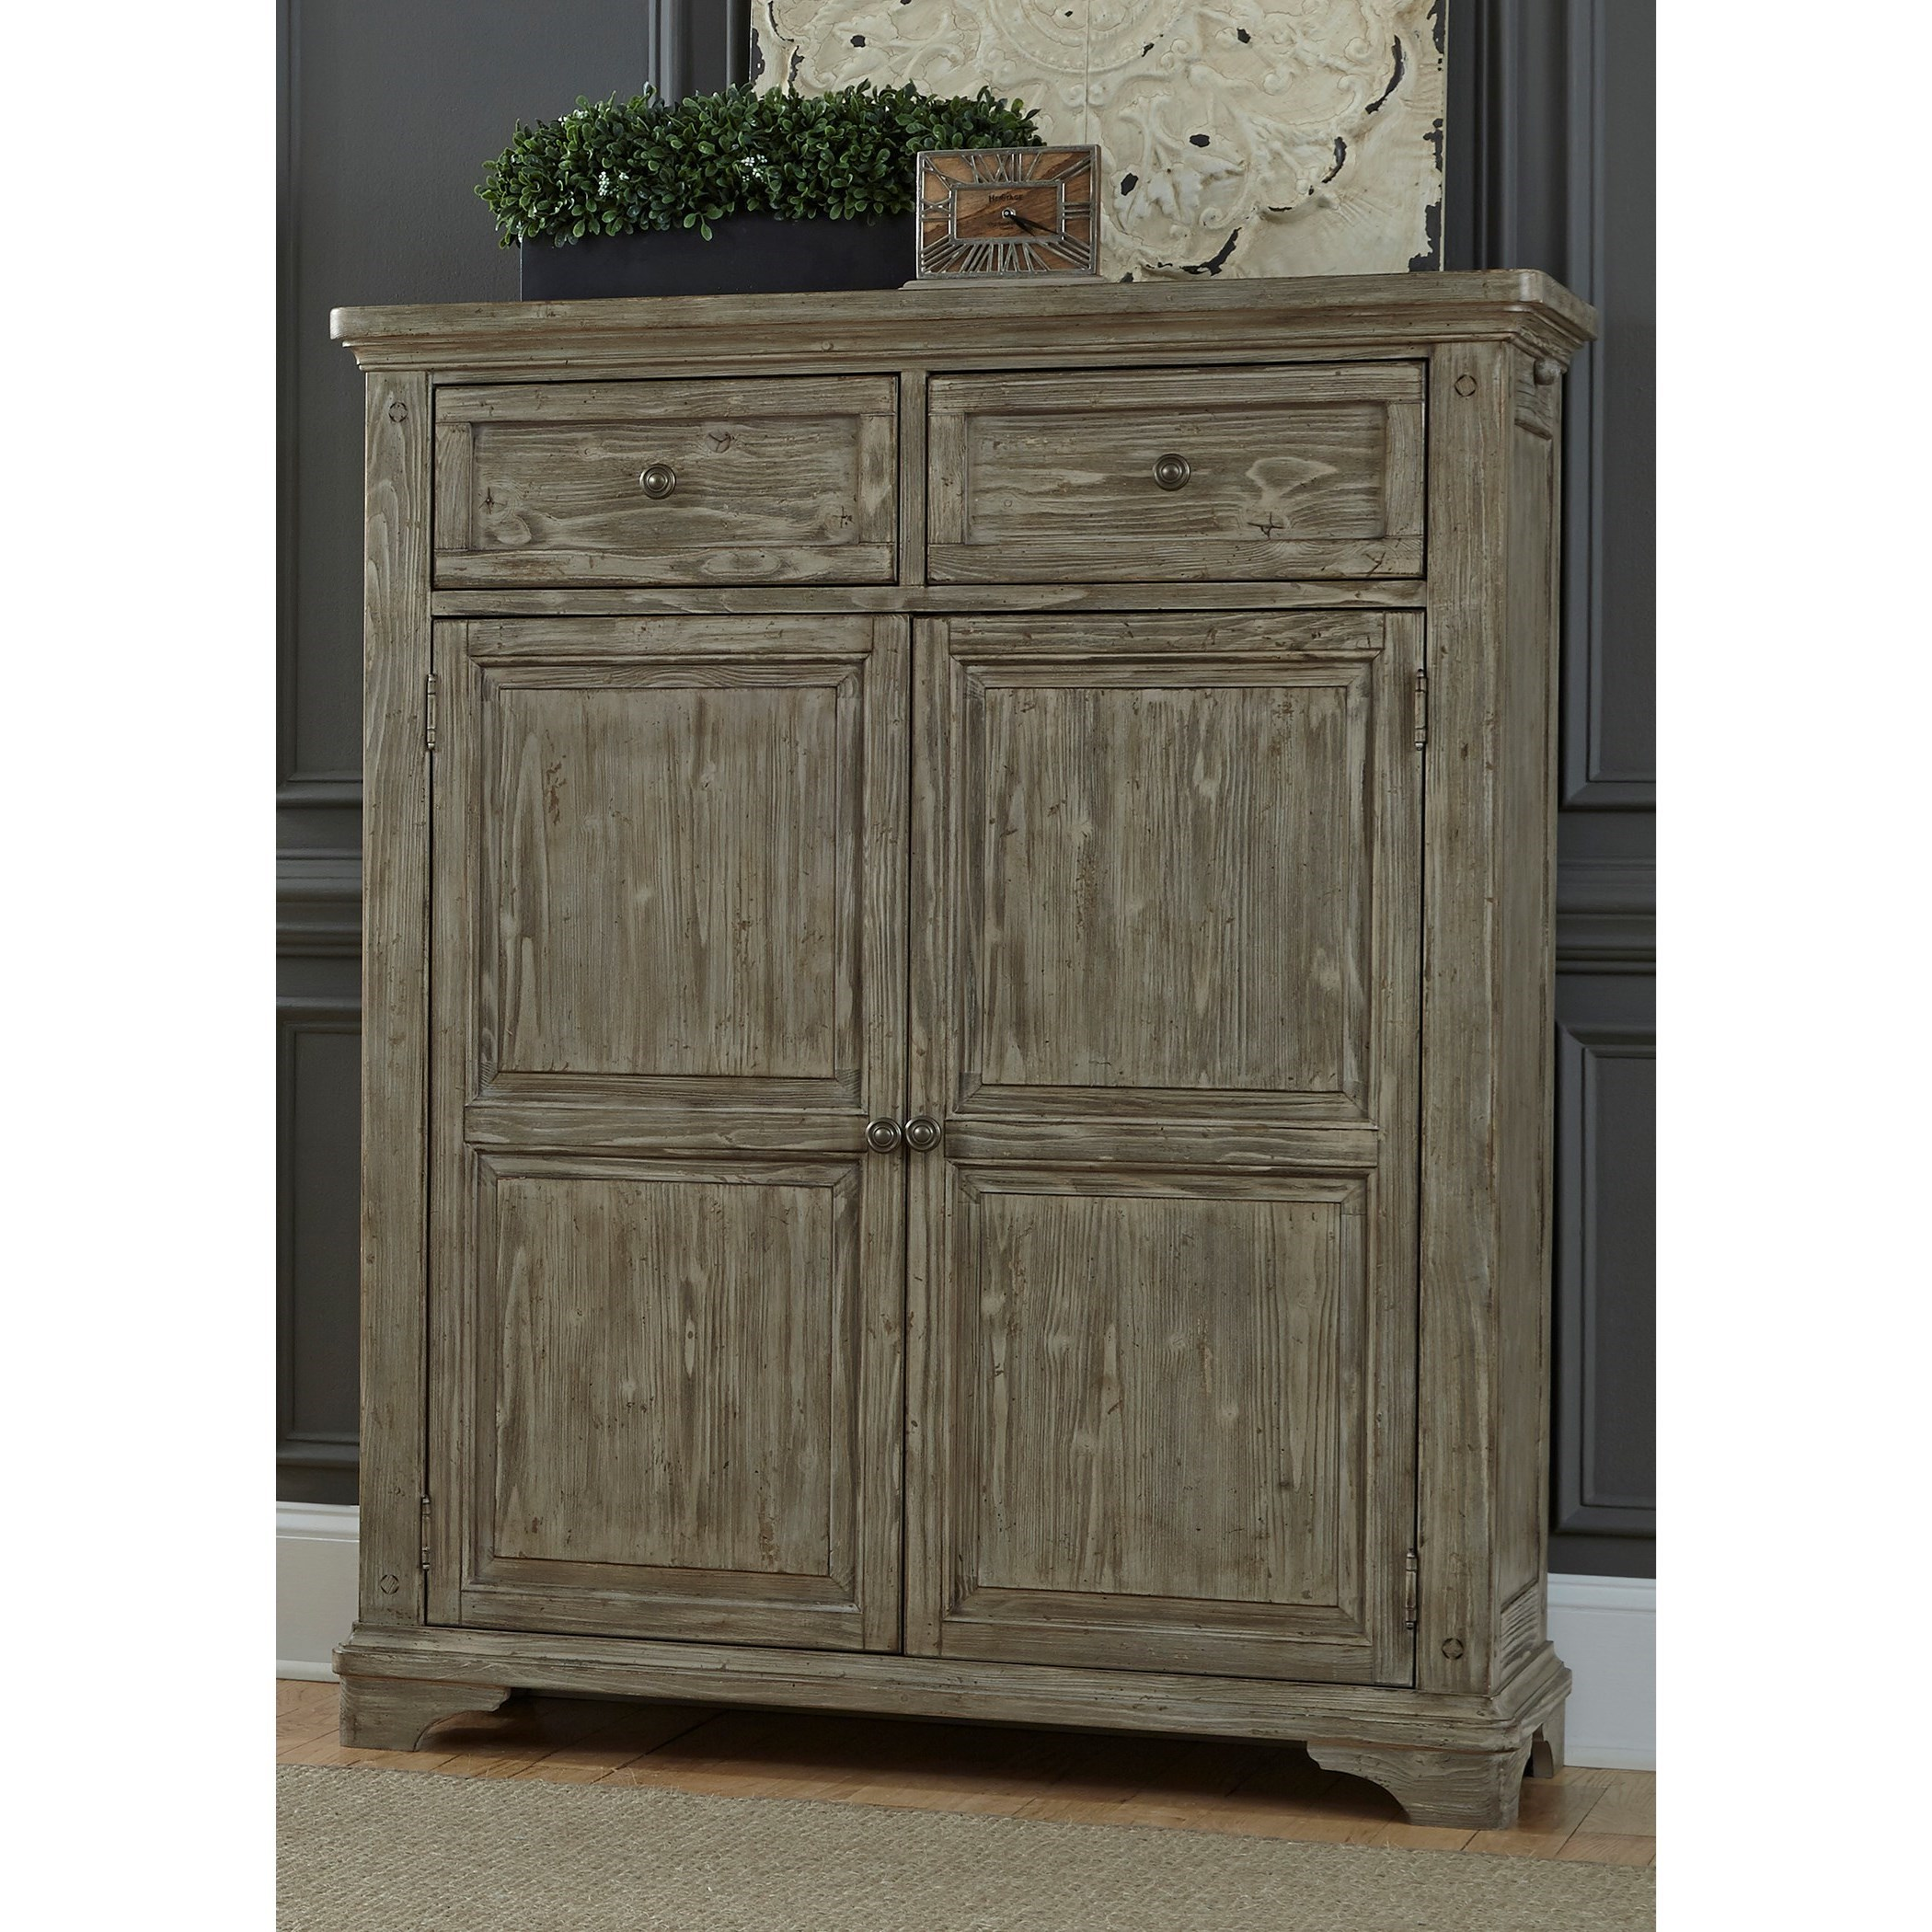 Liberty Furniture Highlands Door Chest with 2 Drawers & Liberty Furniture Highlands Door Chest with 2 Drawers | Howell ...